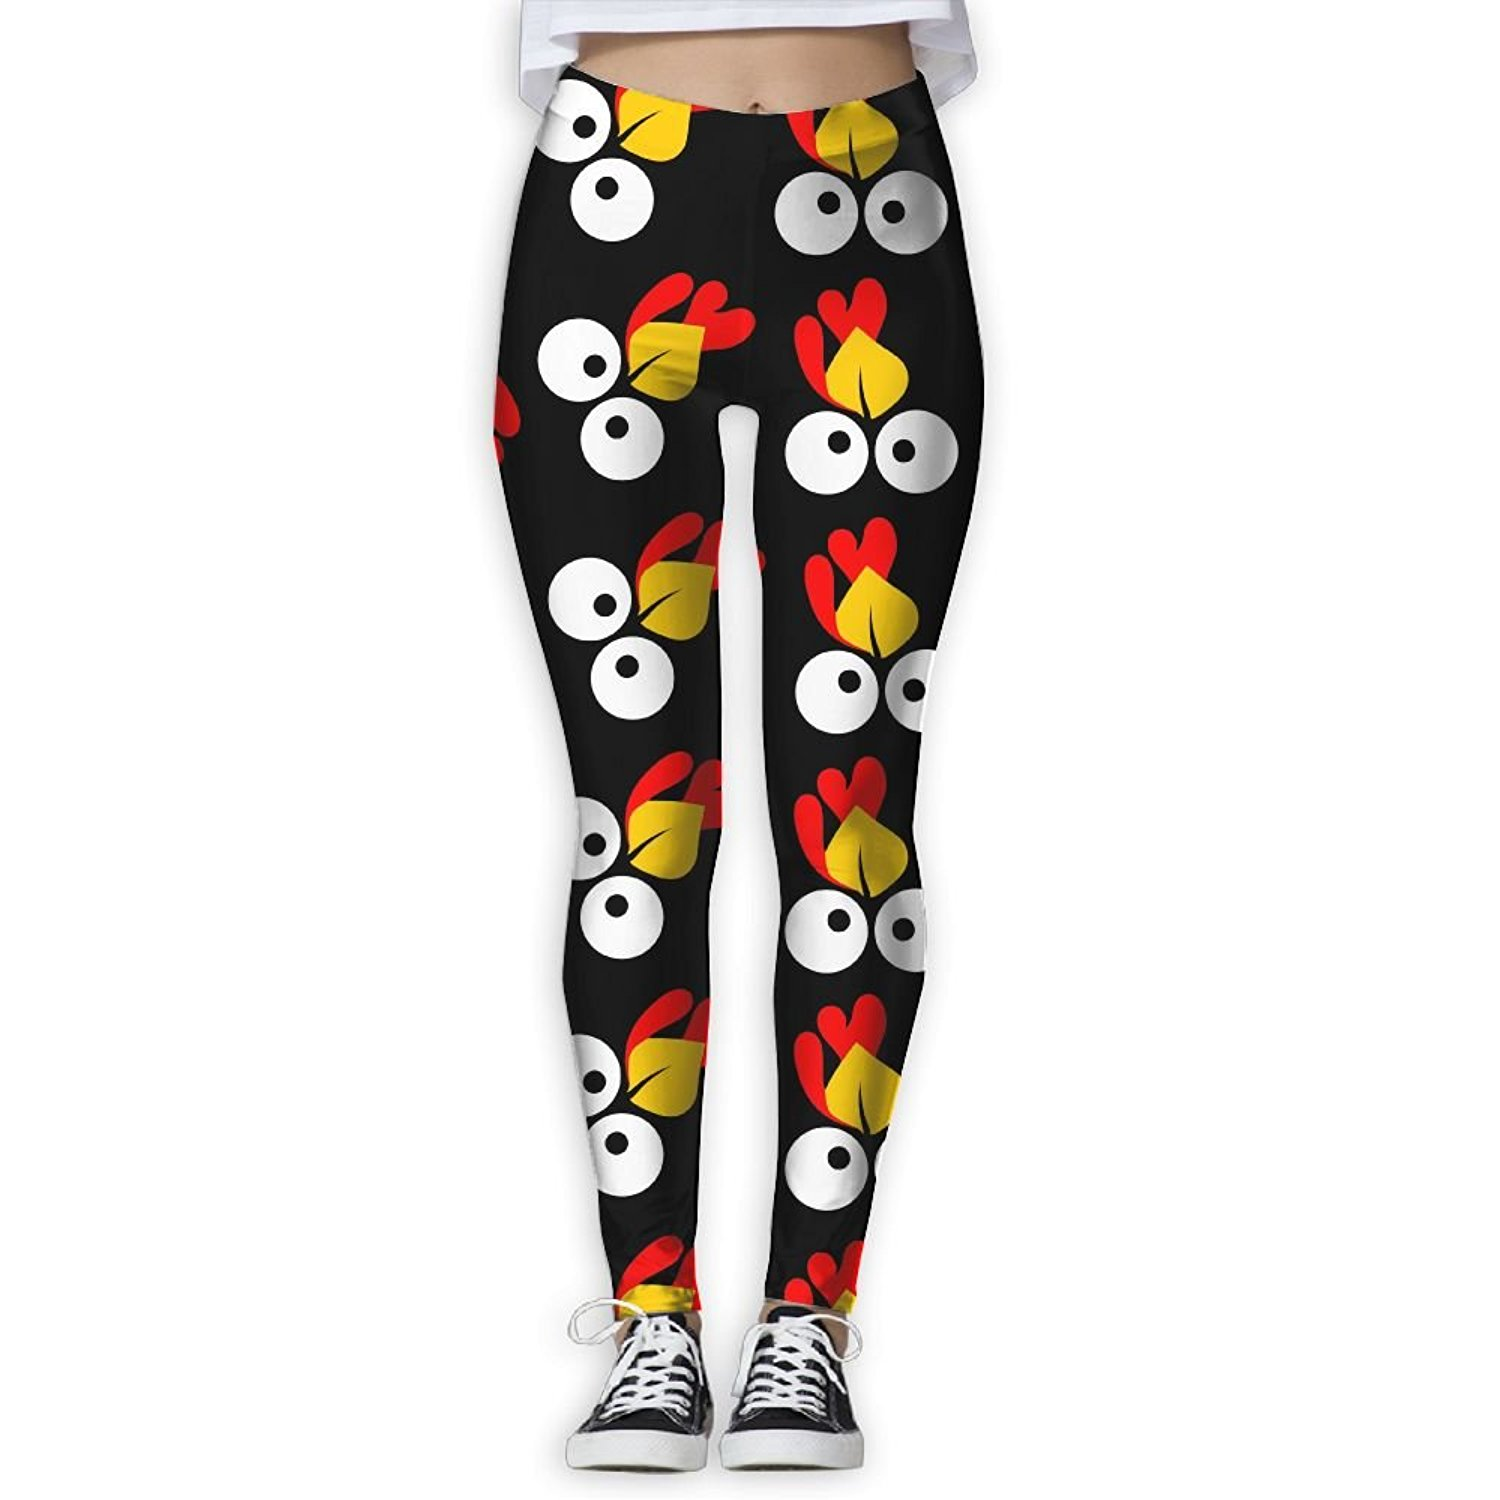 73173046f633f Buy YDBM Cute Turkey Face Women Printed Yoga Pants Elastic Tights Workout  Running Leggings in Cheap Price on m.alibaba.com